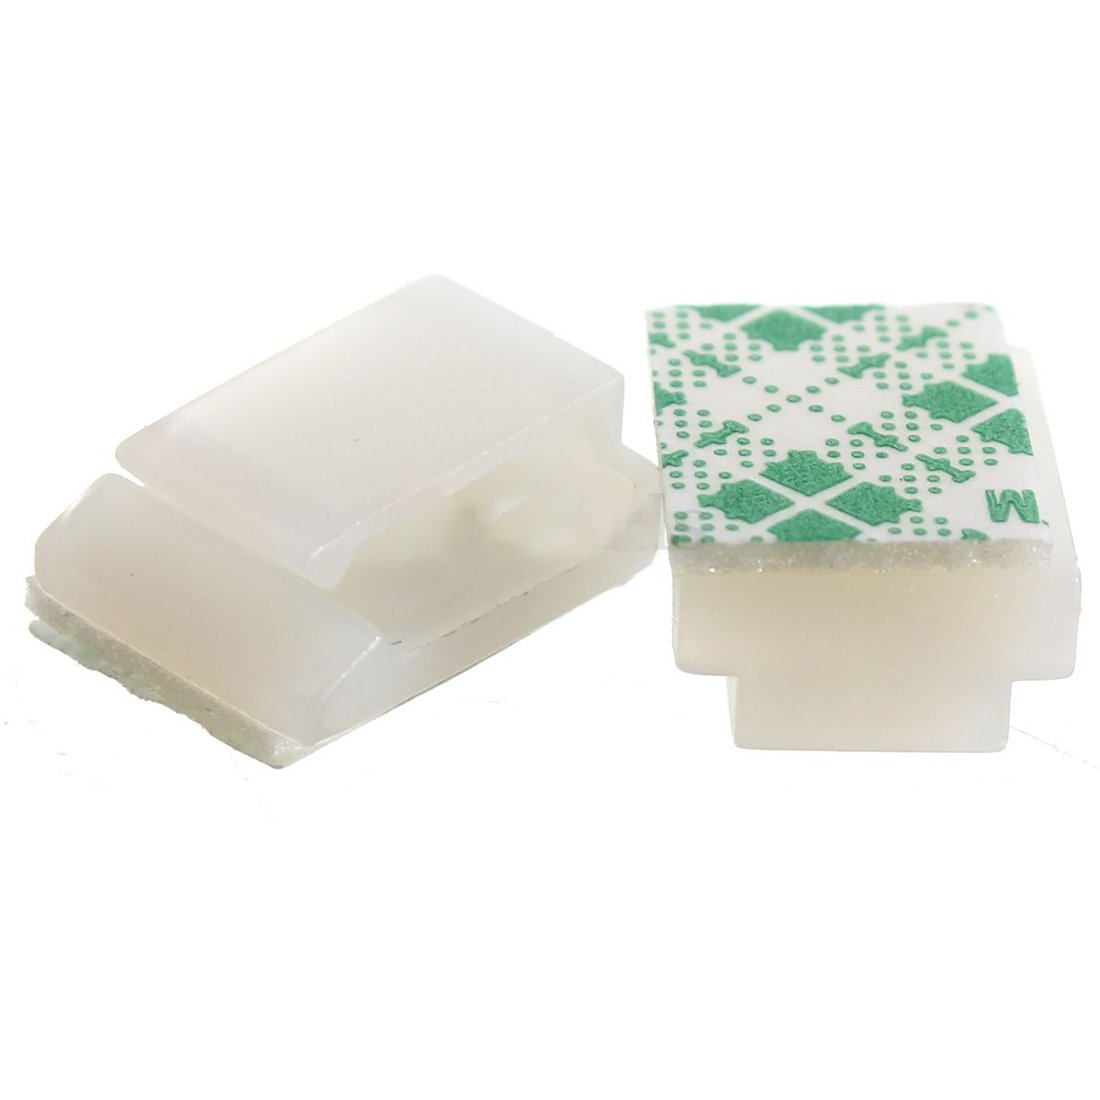 Wire holder - SODIAL(R)100XPlastic Wire Tie Rectangle Cable Mount Clip Clamp Self-adhesive White